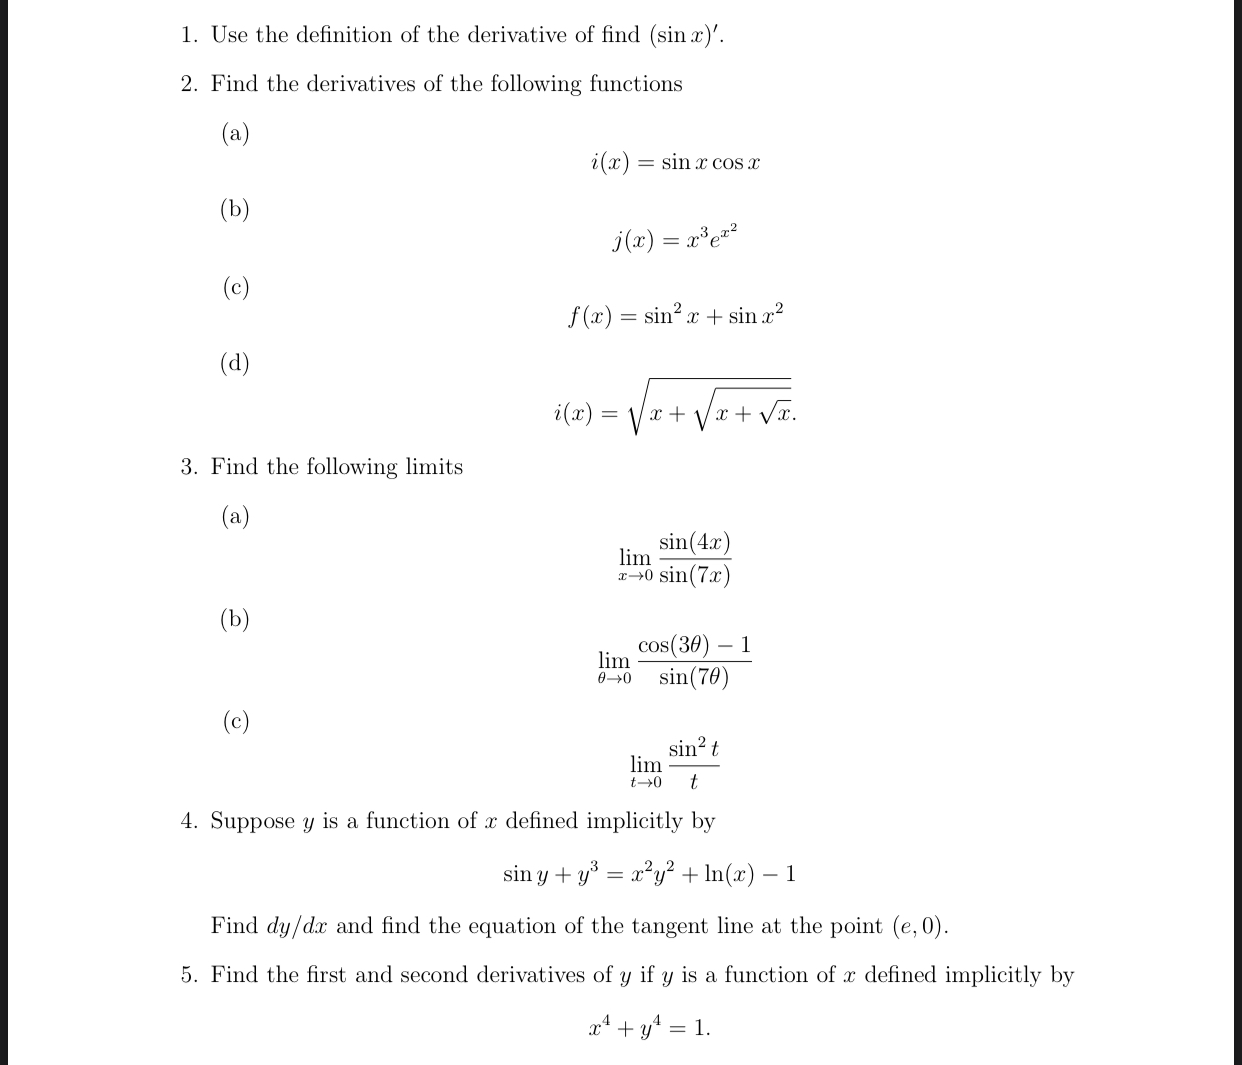 Use the definition of the derivative of find (sin x)'.